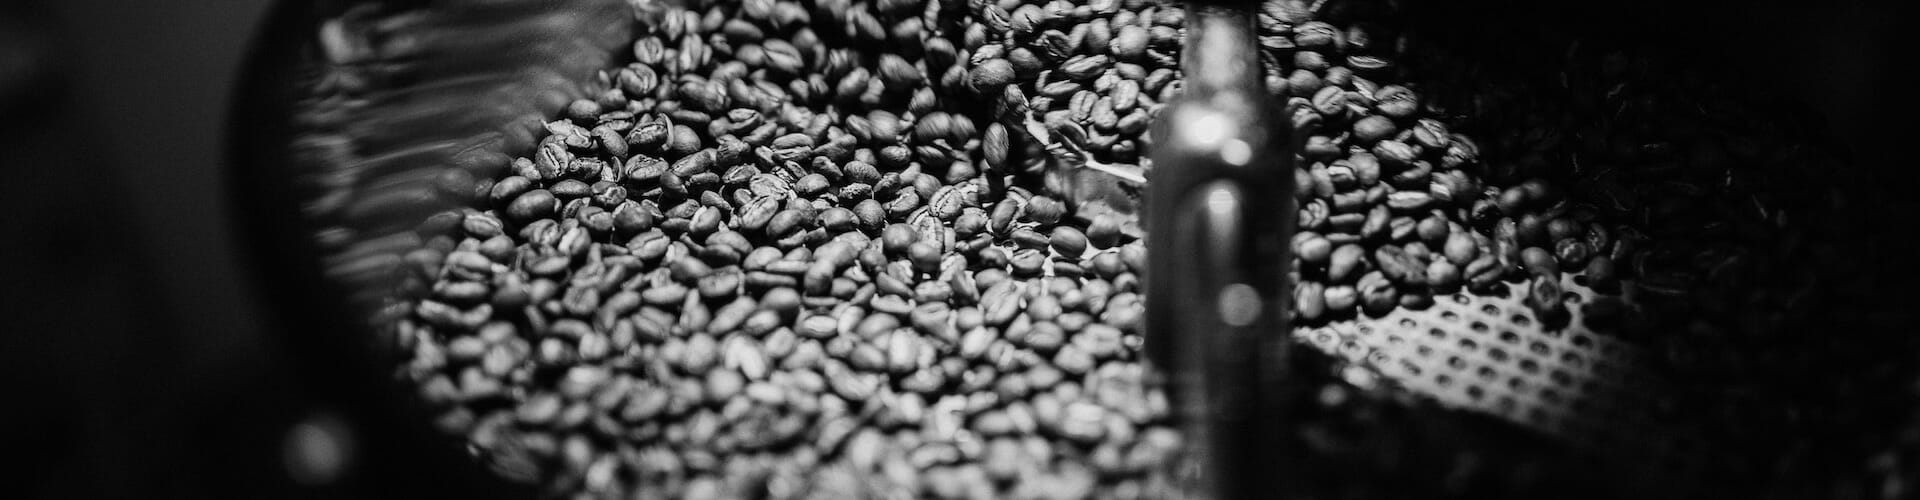 Roasting coffee beans 6